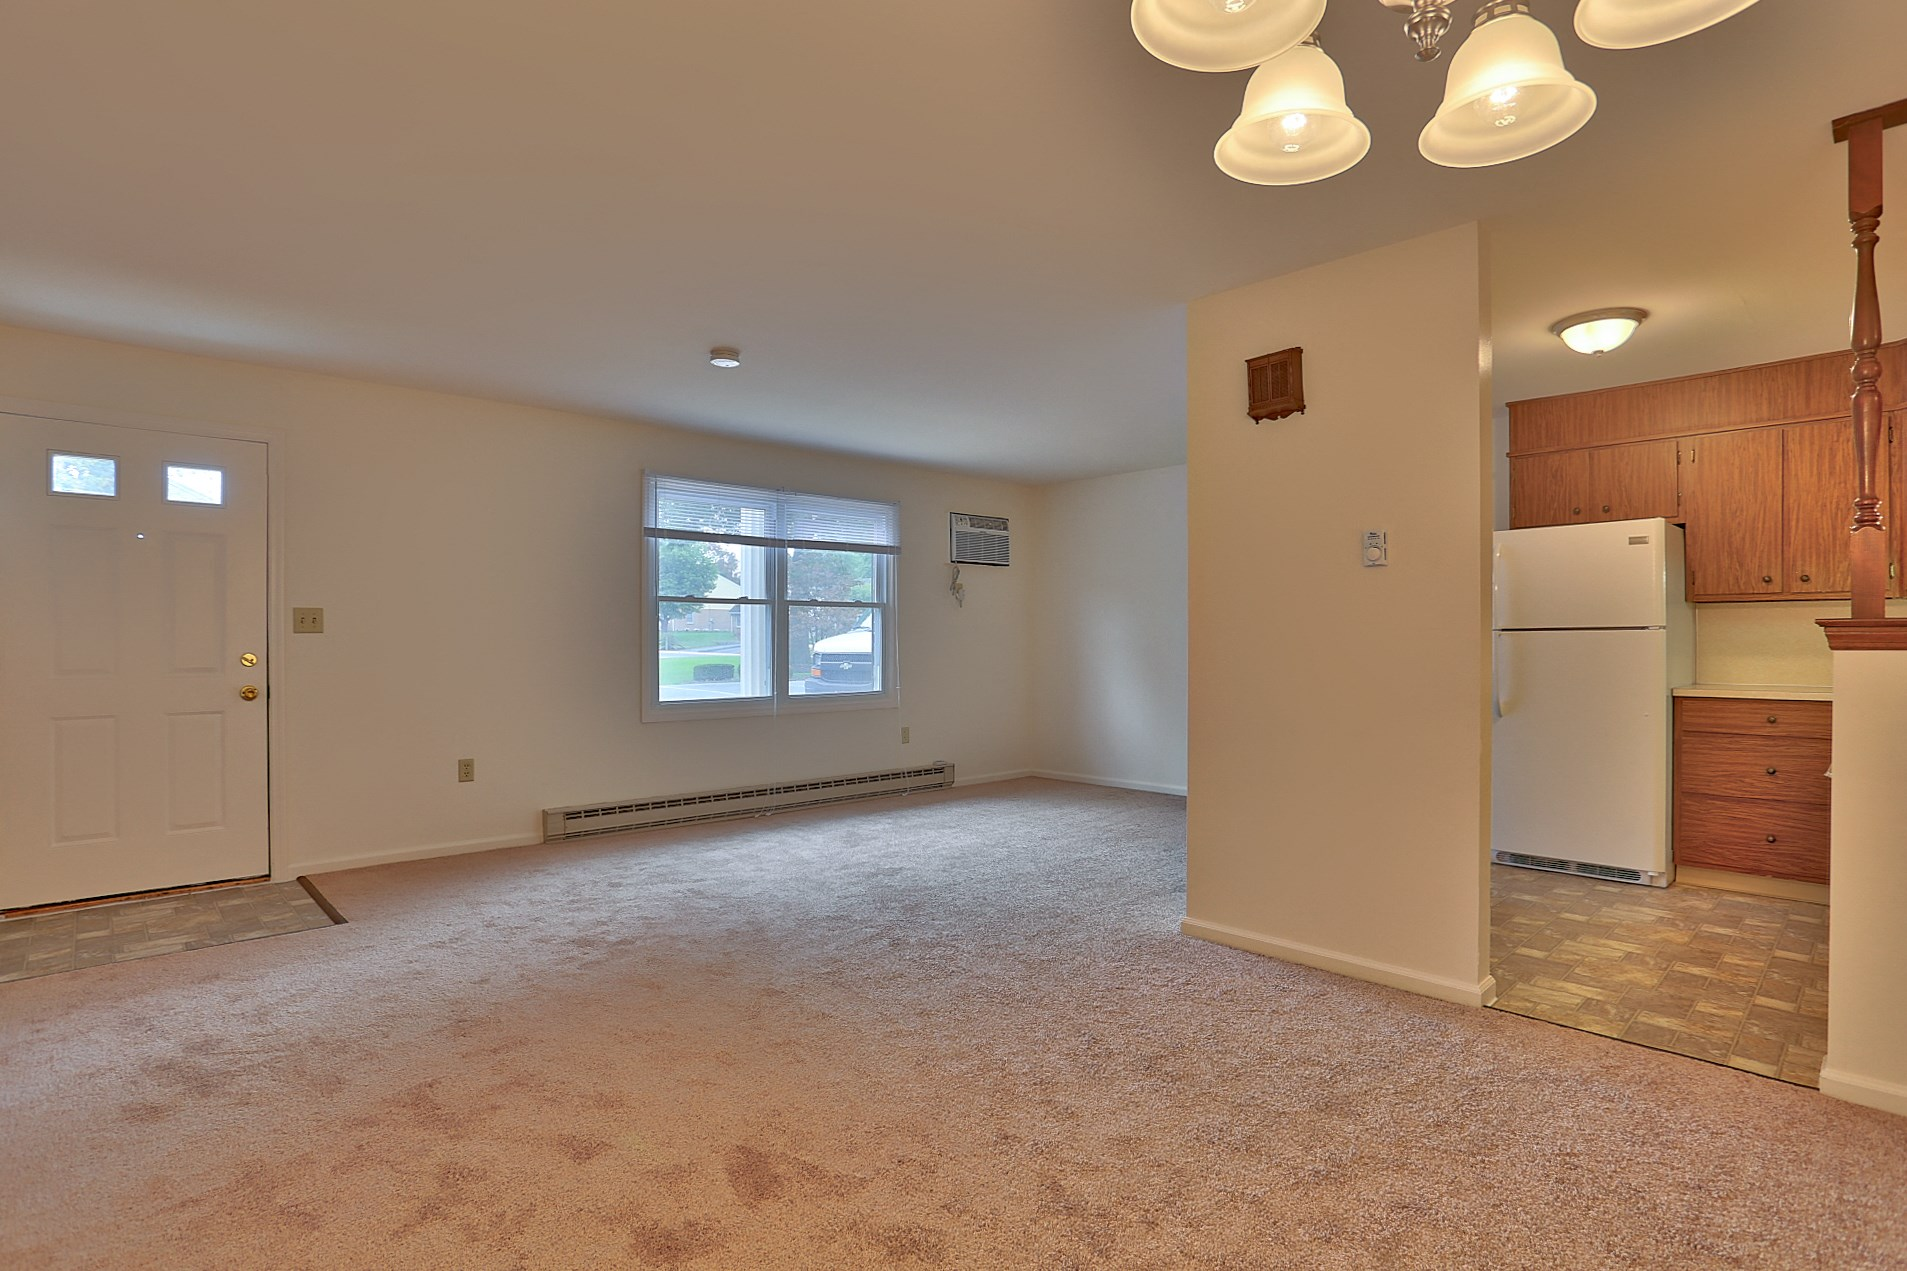 Apartment Rental in Akron, PA | Colonial Apartments | property Management, Inc.